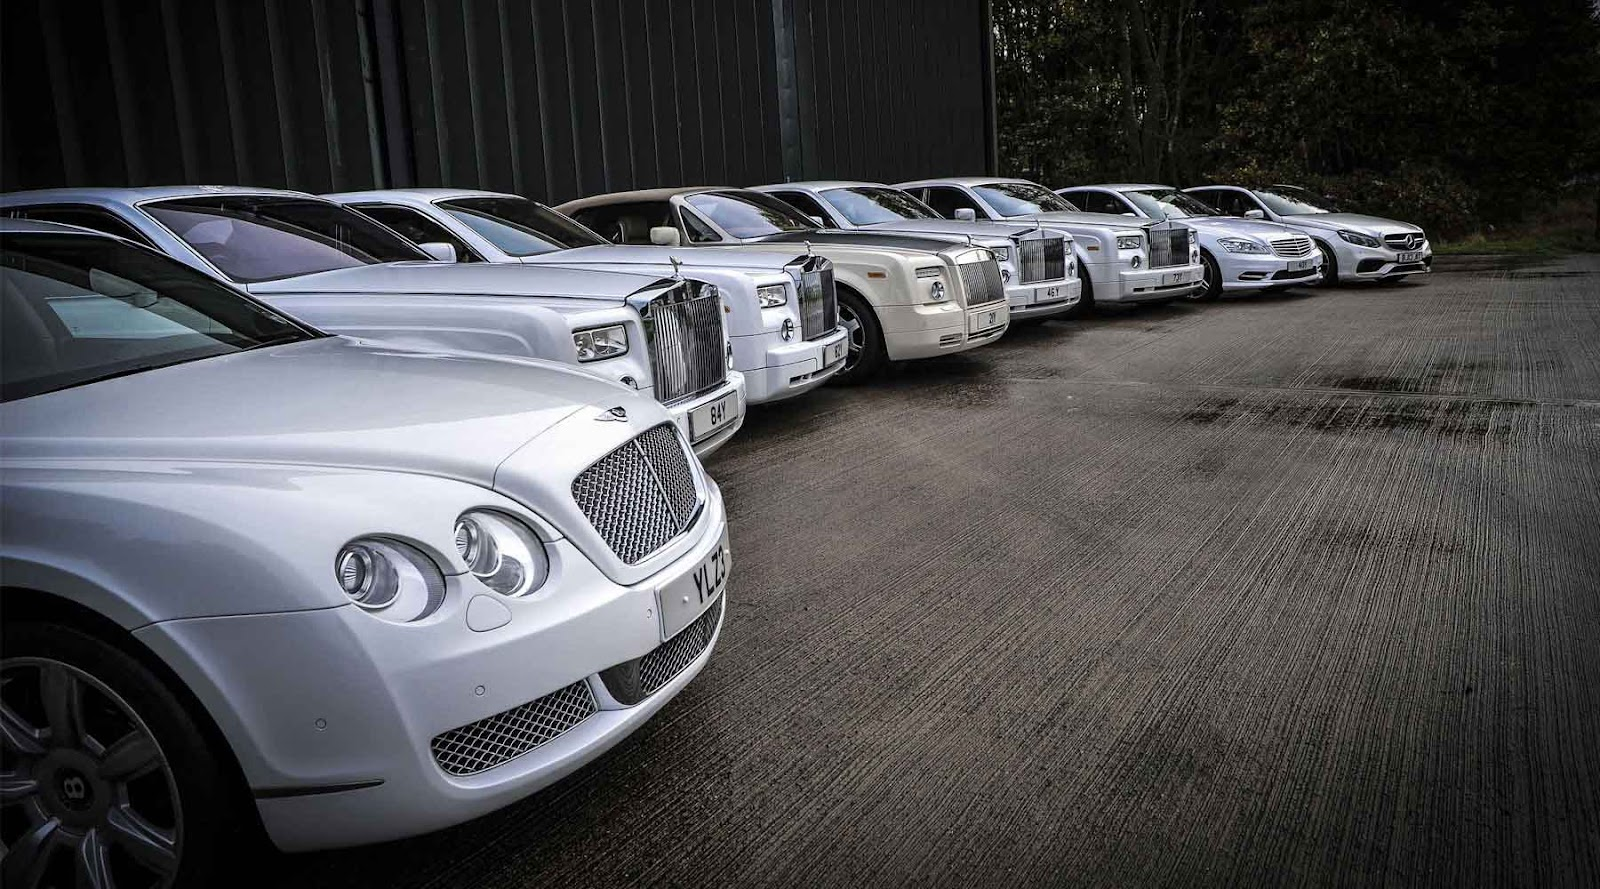 Luxury Car Rentals - A New Way of Life